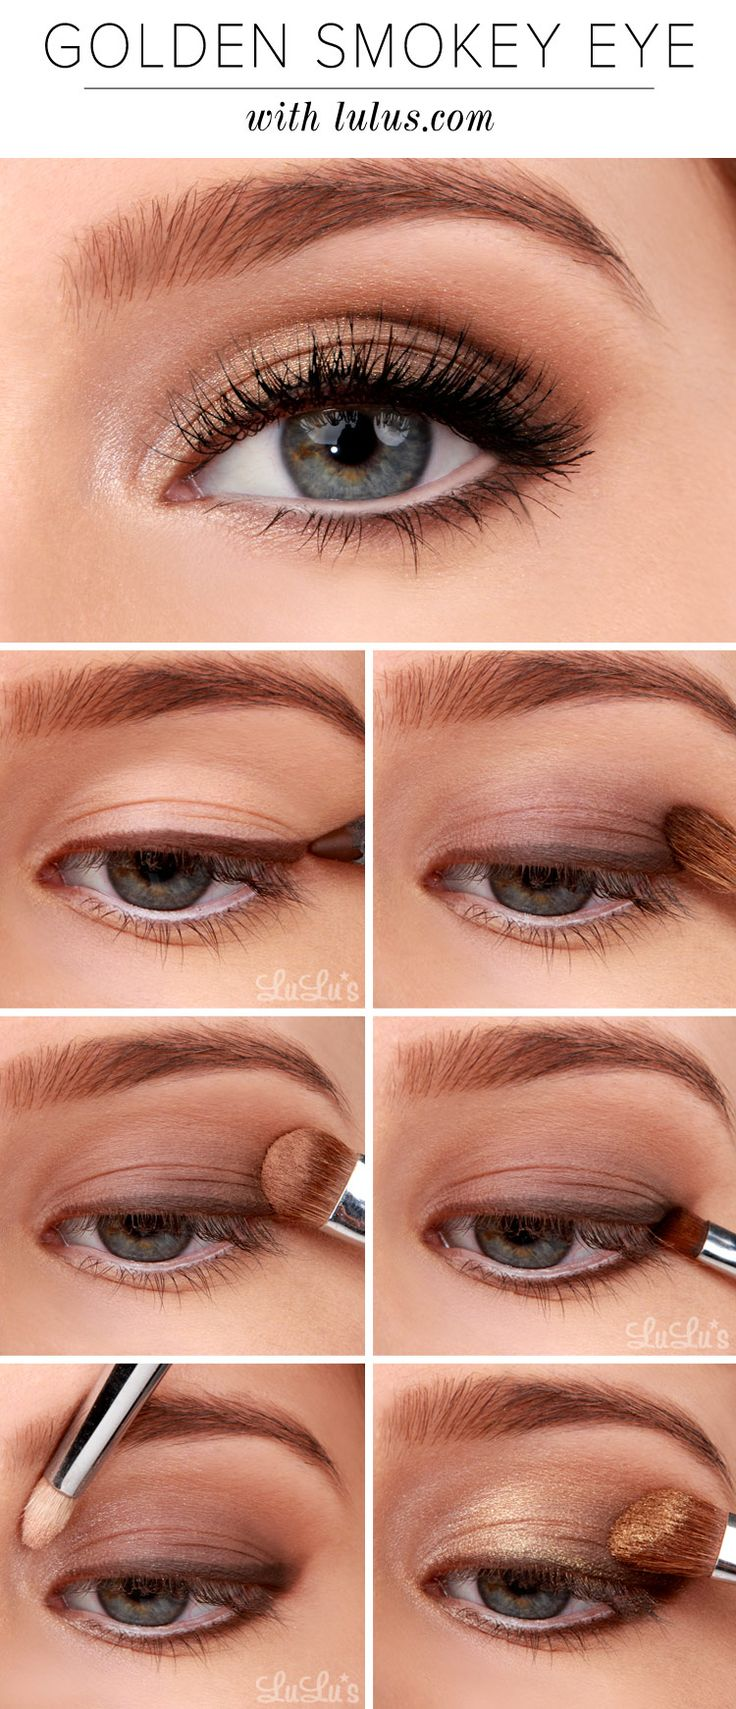 Best Smokey Eye Make-up Step By Step Tutorial and Ideas with Pictures (1)